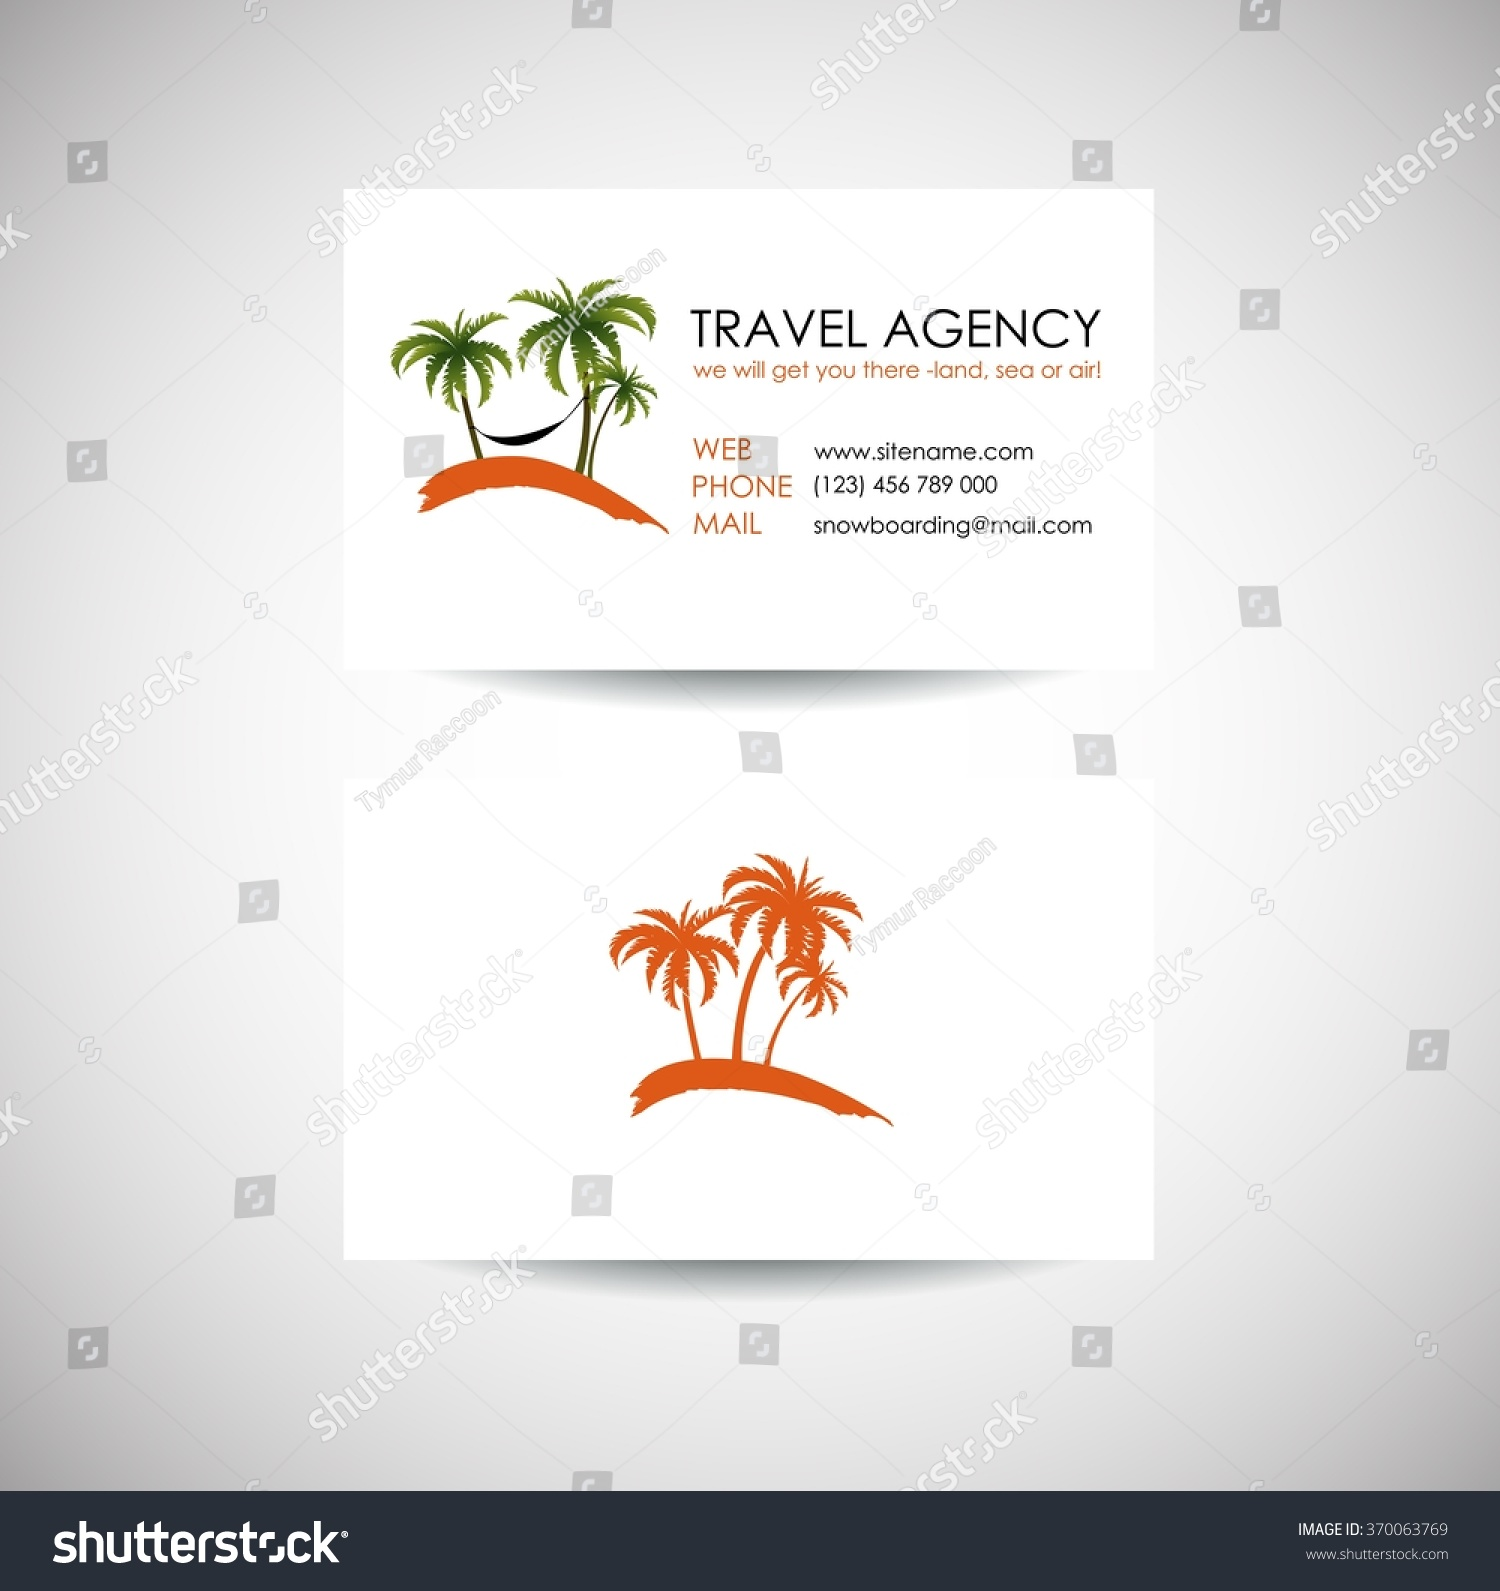 Travel agency business card template travel stock vector 370063769 travel agency business card template travel agency logo design idea magicingreecefo Choice Image